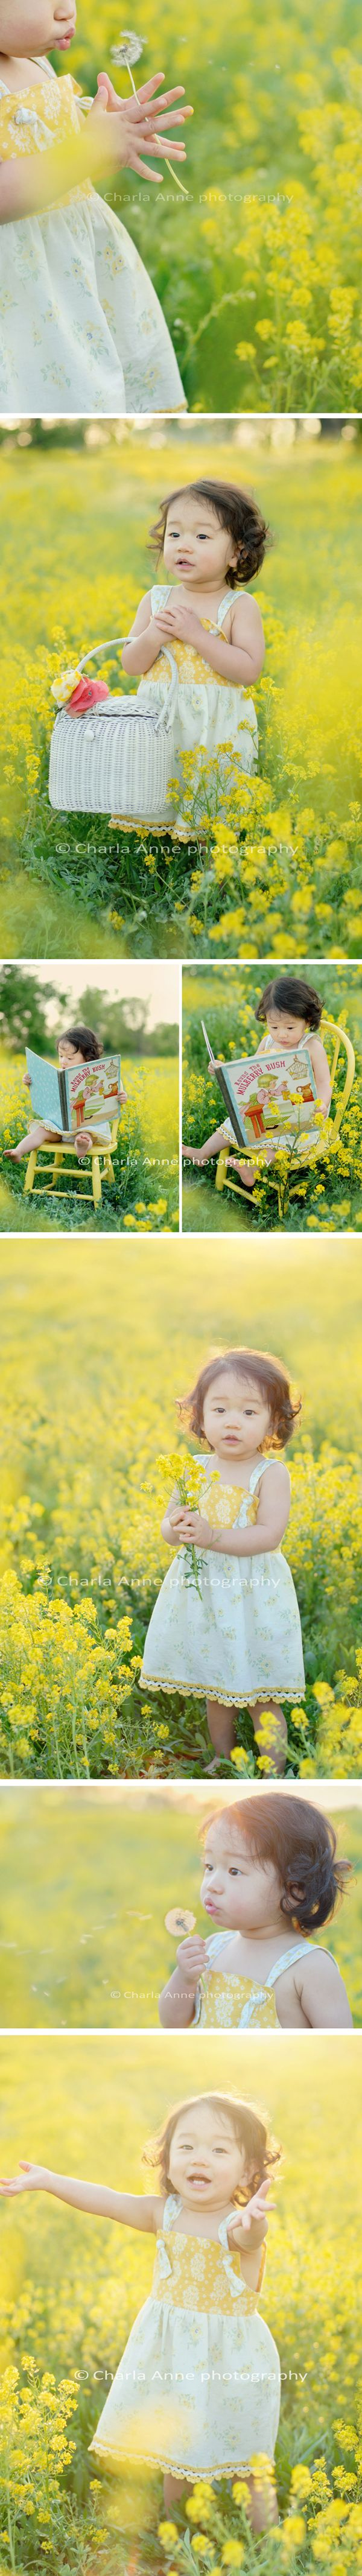 This inspires me to take more and better photos of my own family - do it - now!